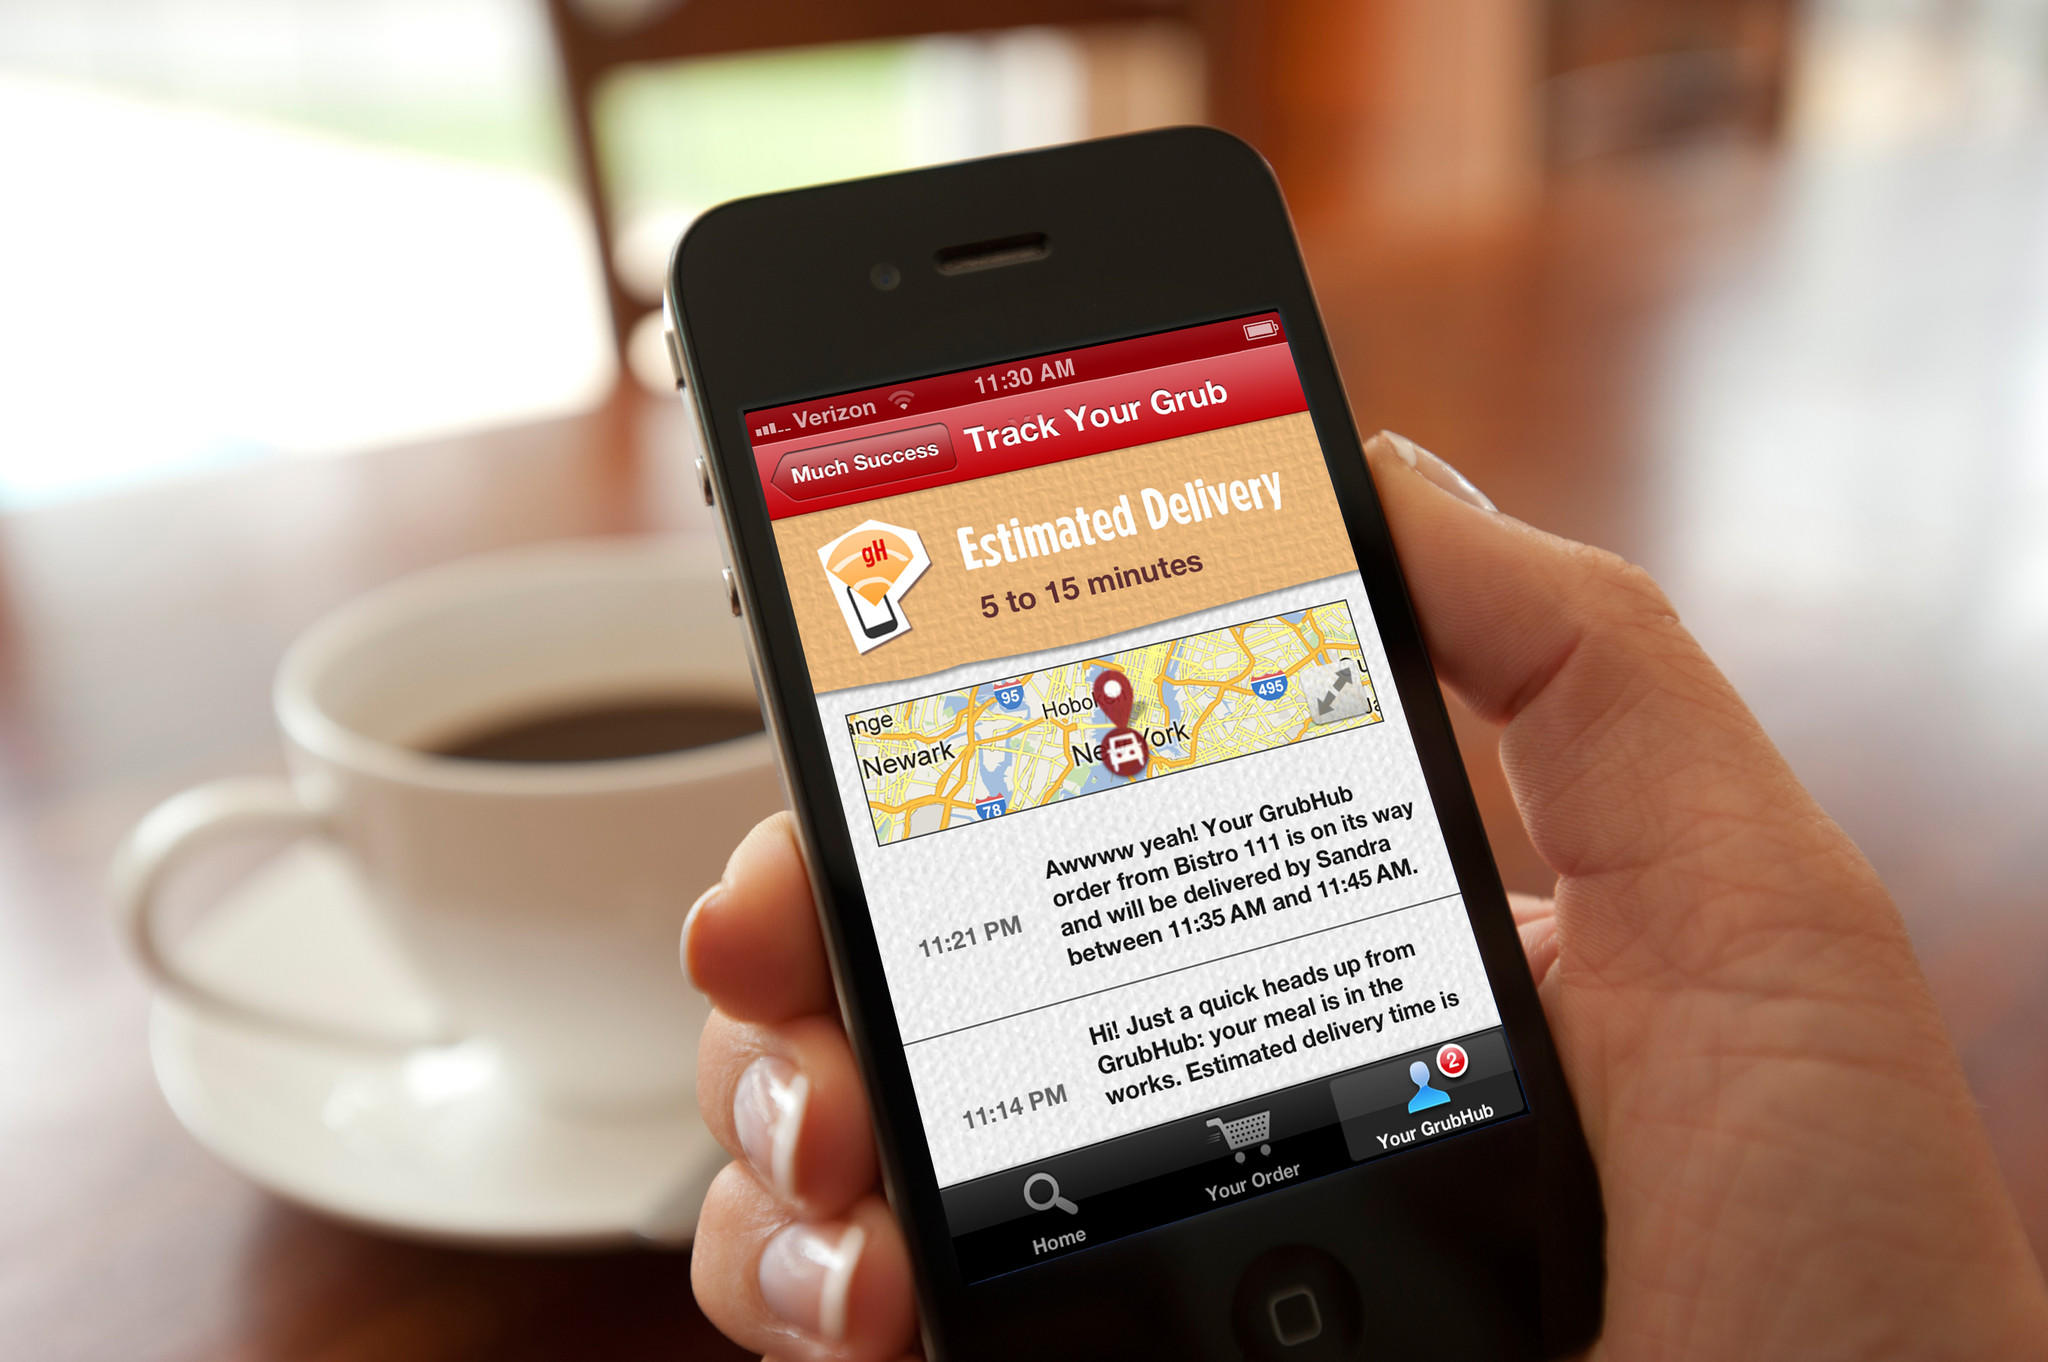 GrubHub has 28,800 restaurants and 3.4 million active users in its network as of Dec. 31.